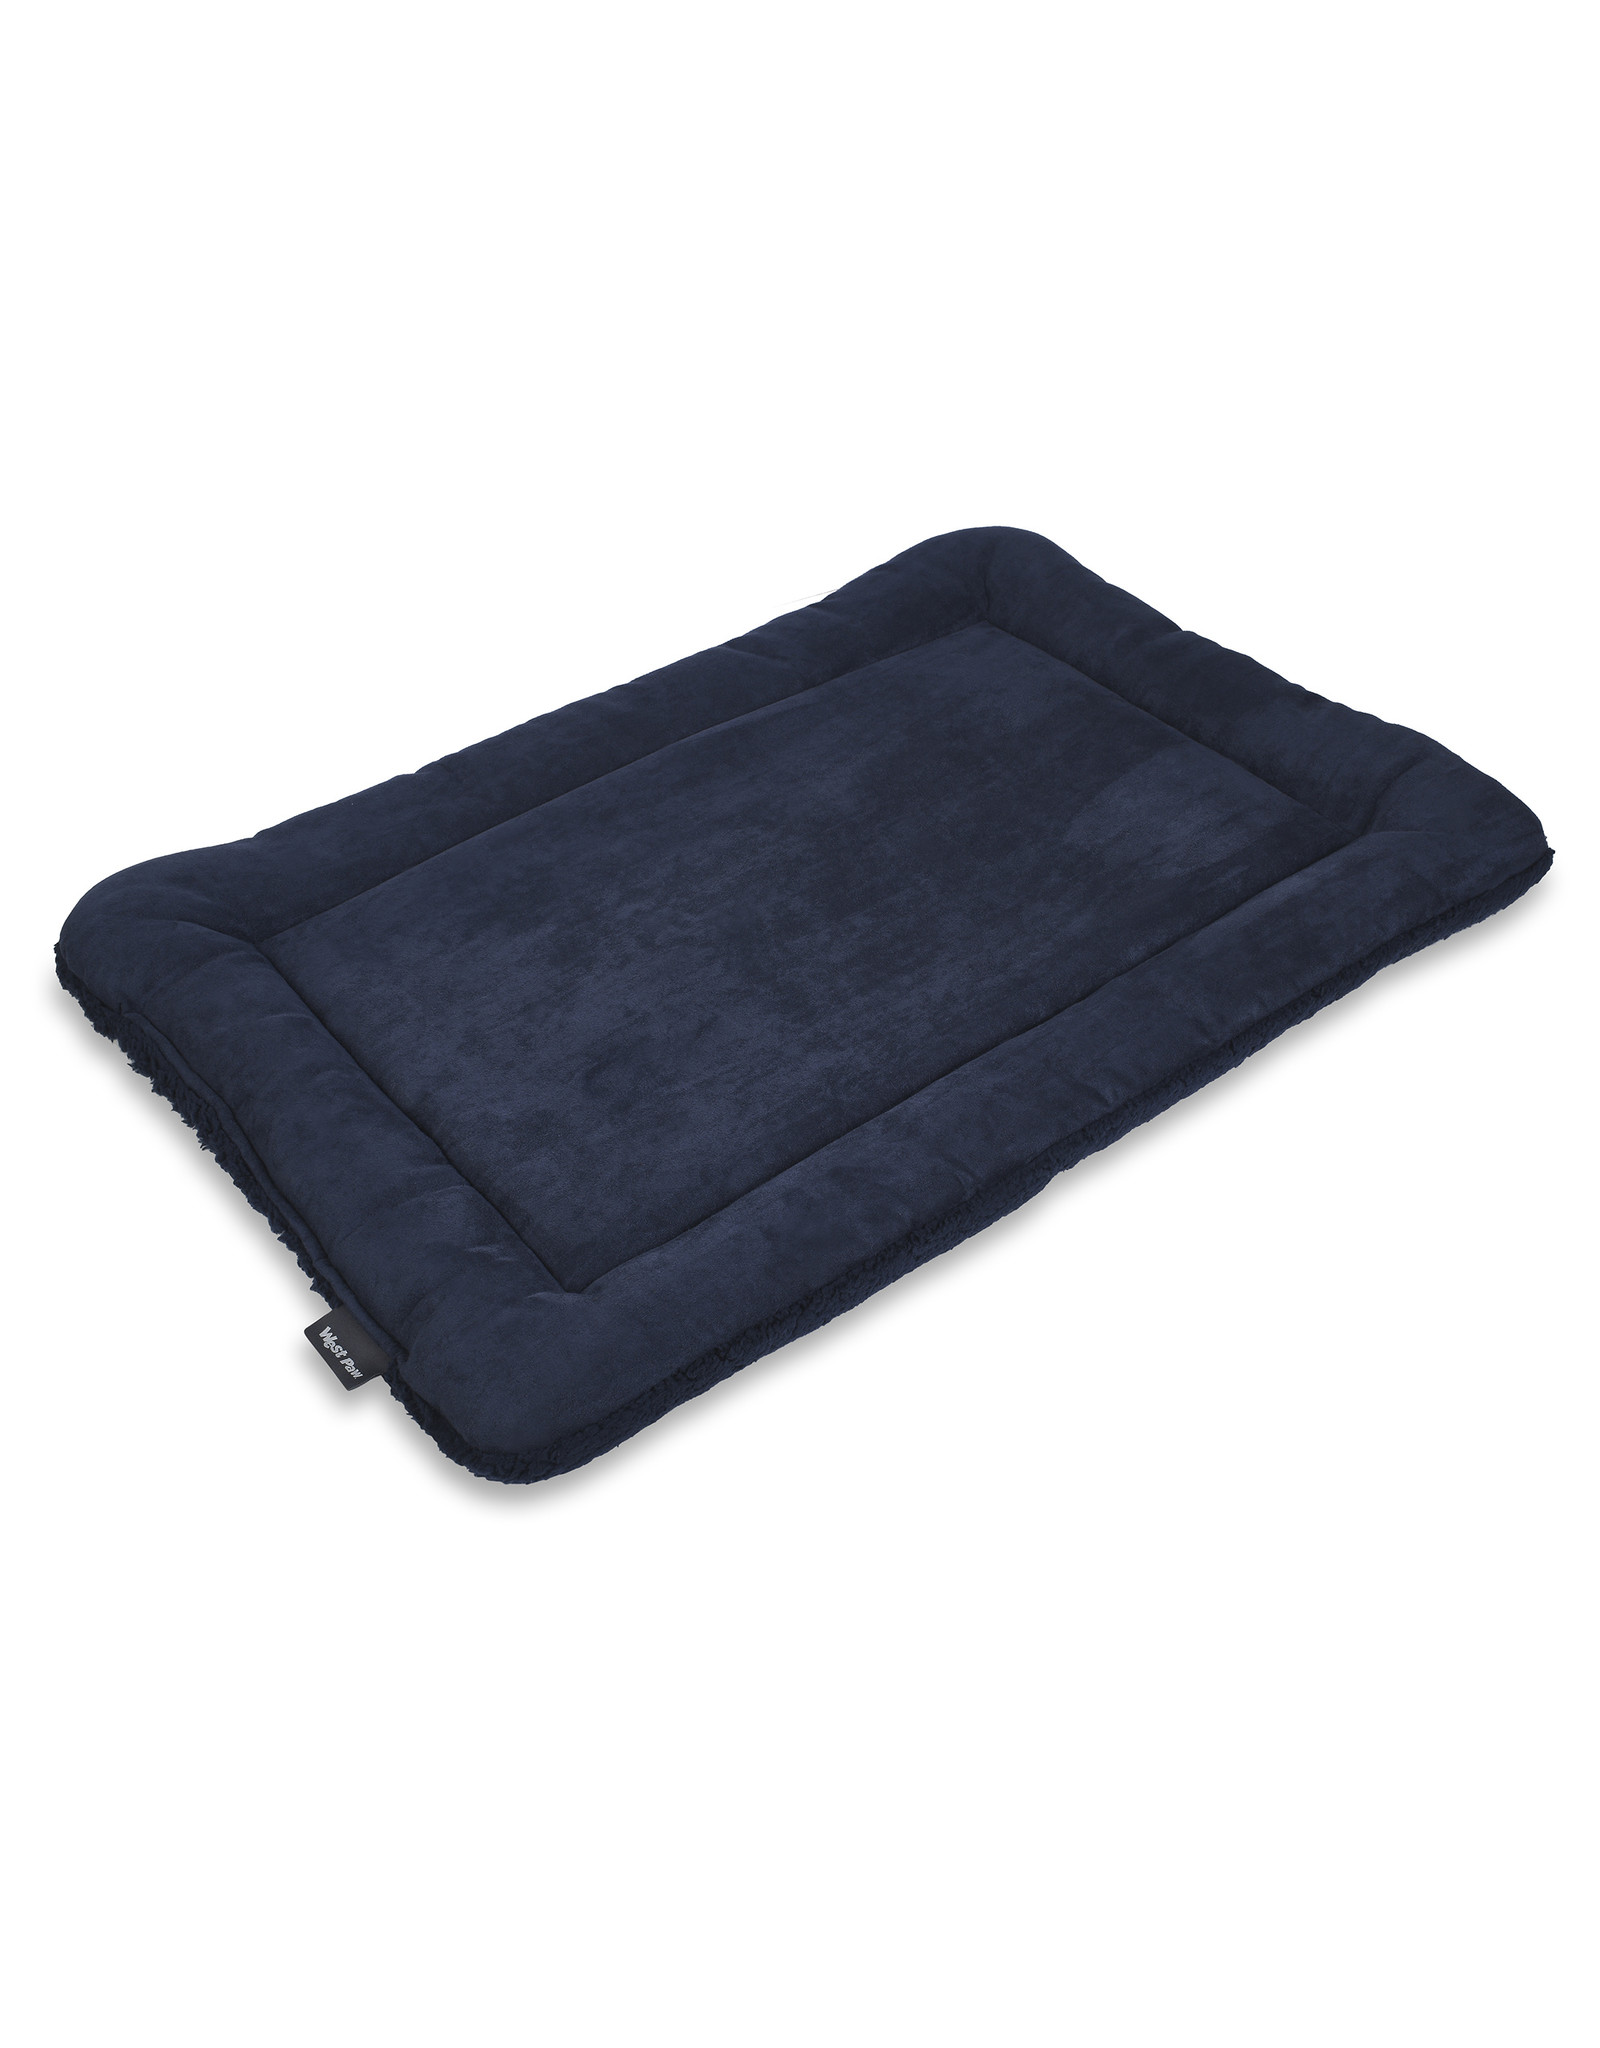 West Paw Designs Westpaw: Big Sky Nap XL Midnight